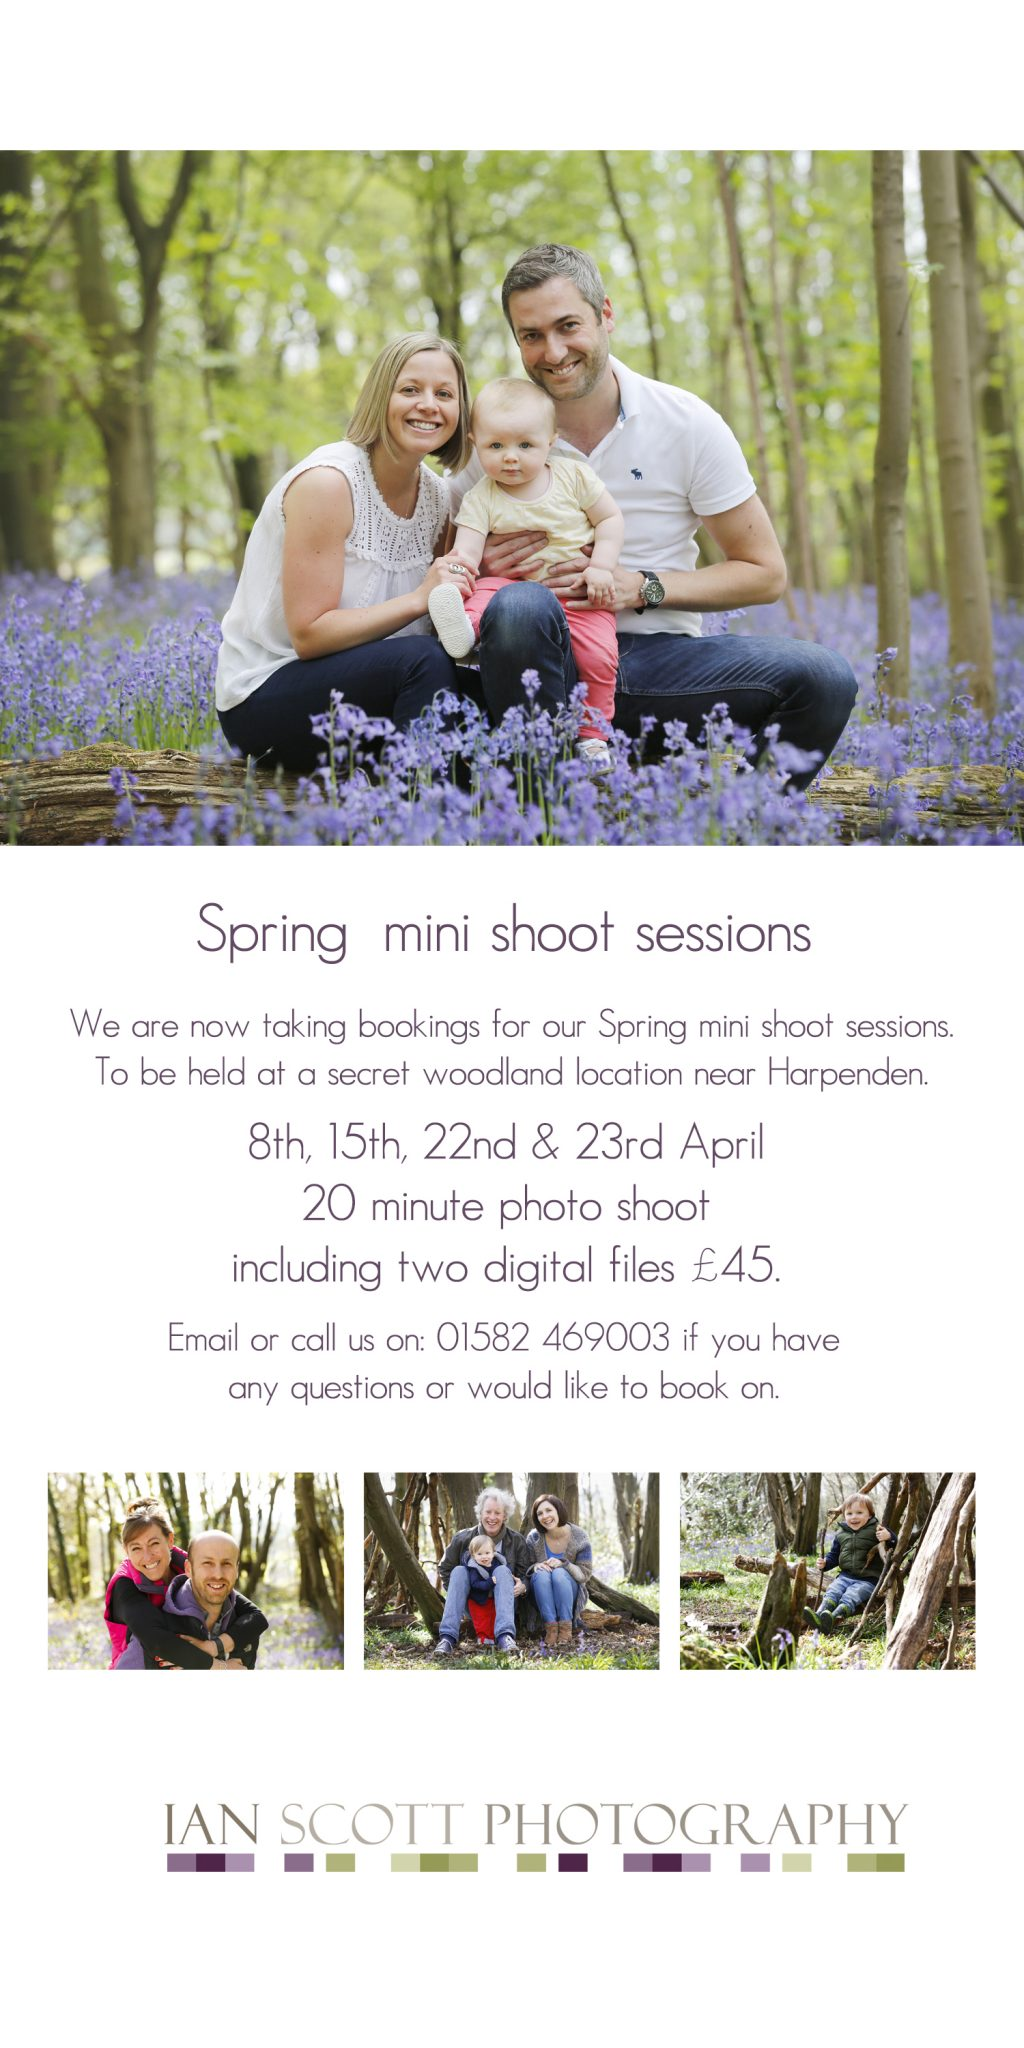 Spring photo shoot sessions Harpenden